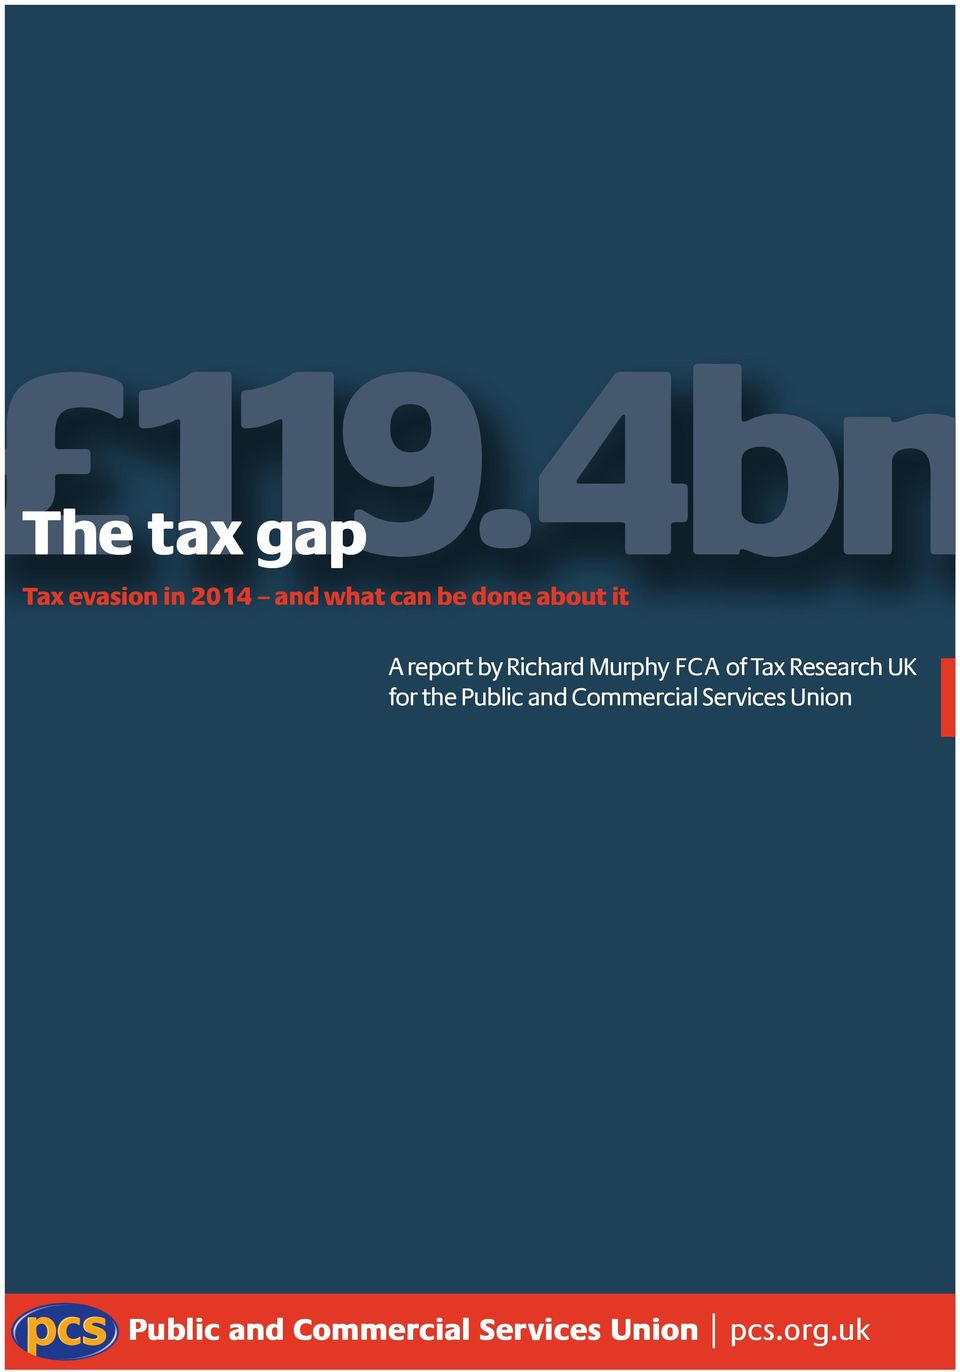 Tax Research UK for the Public and Commercial